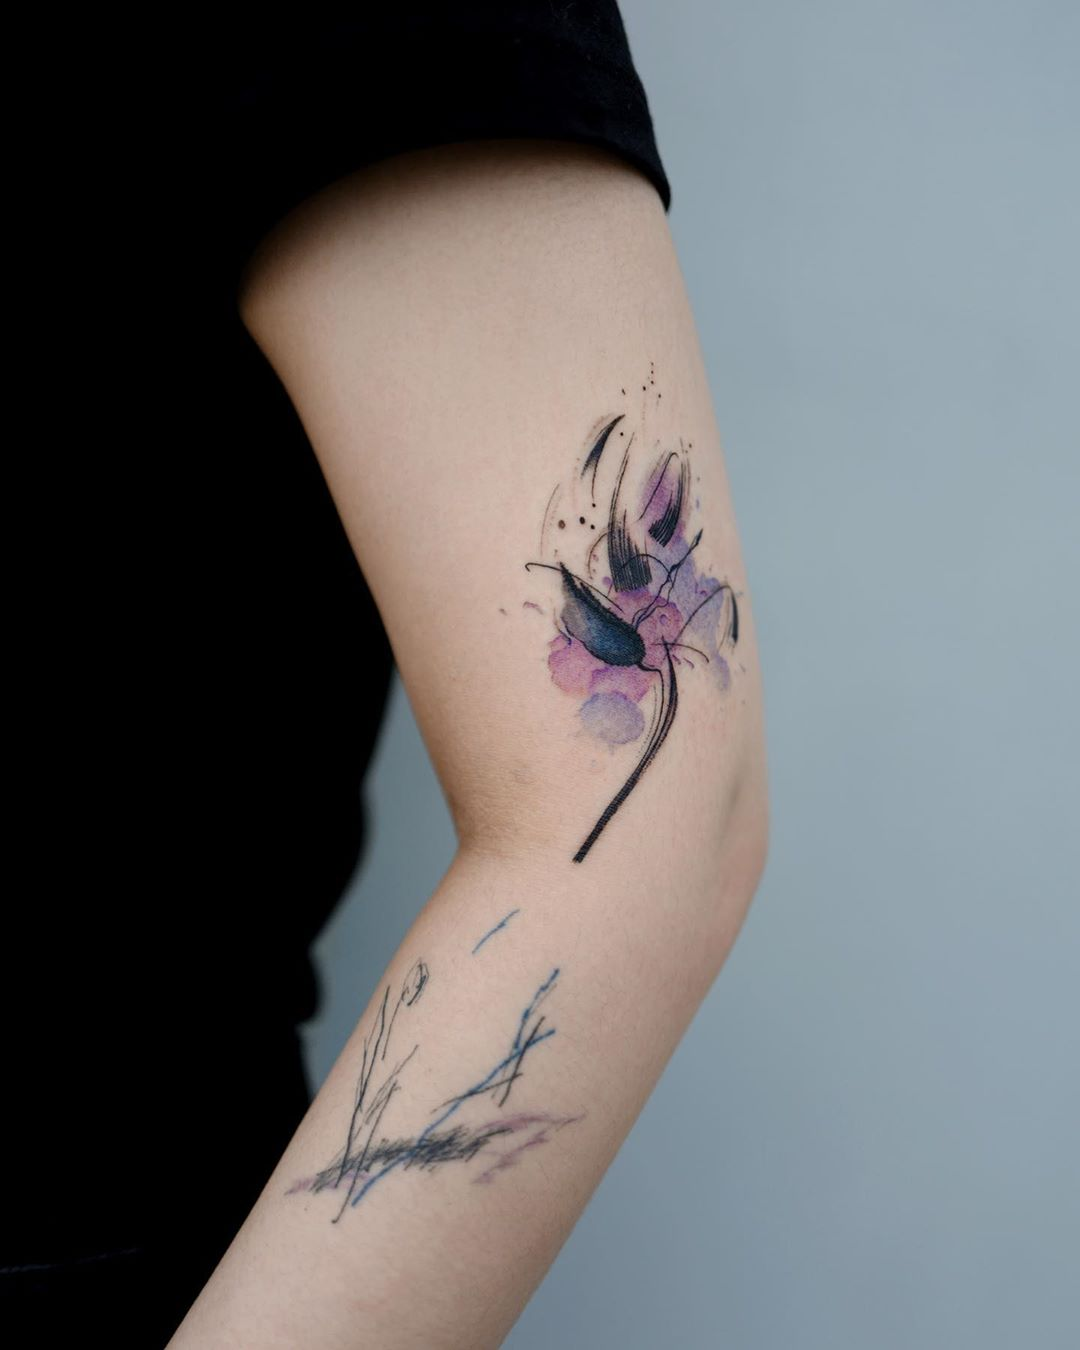 Shaky blooming flower tattoo by Studio Bysol